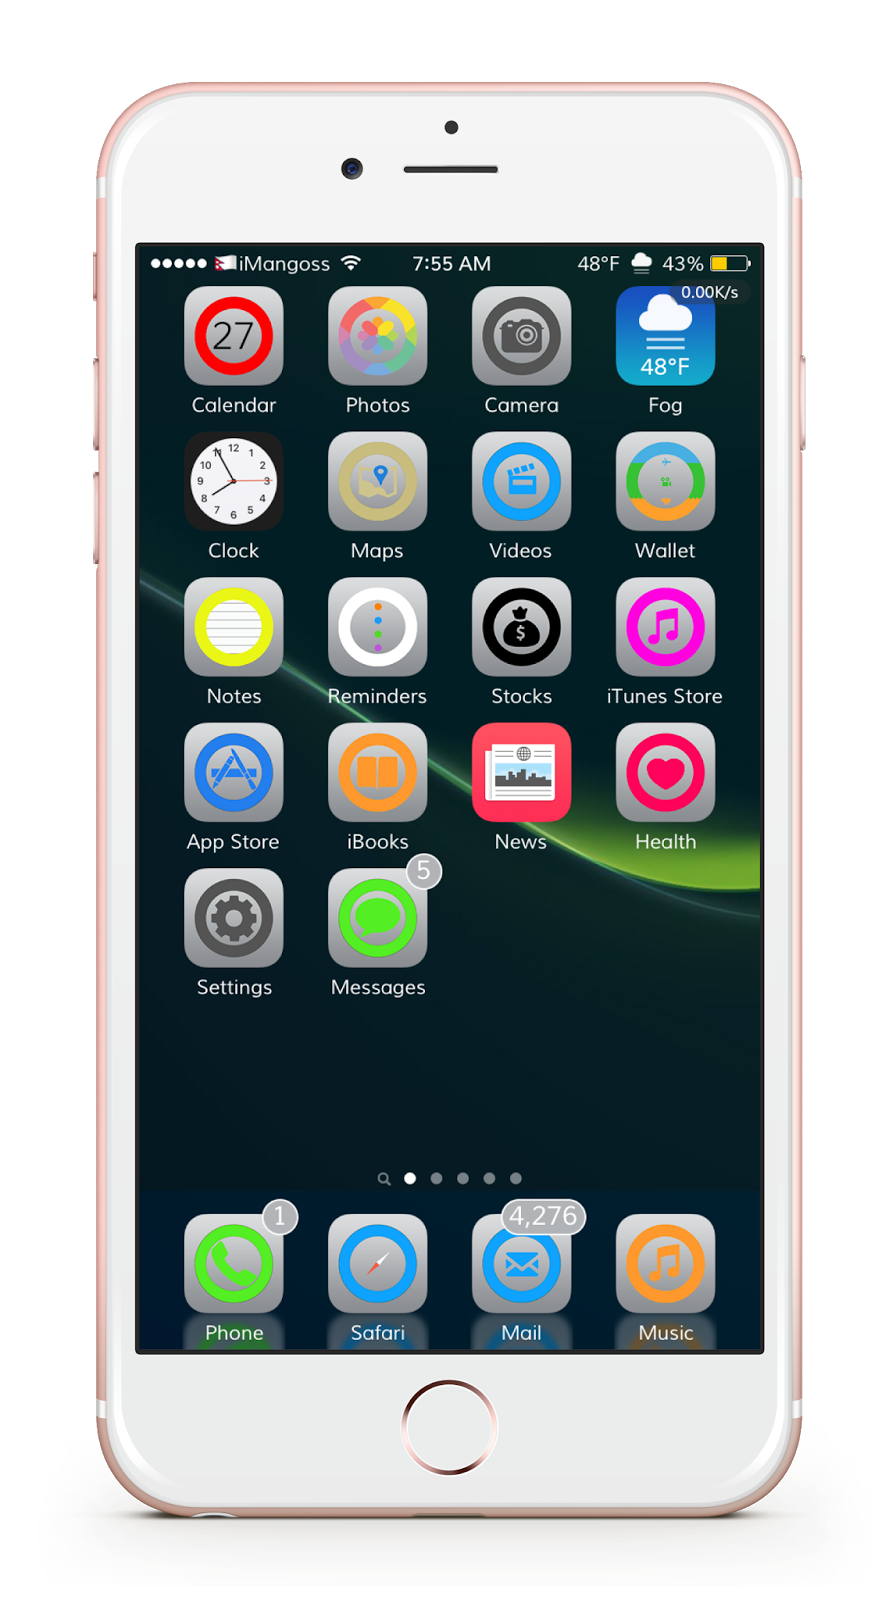 Best iOS themes for iPhone, iPad and iPod touch - iMangoss